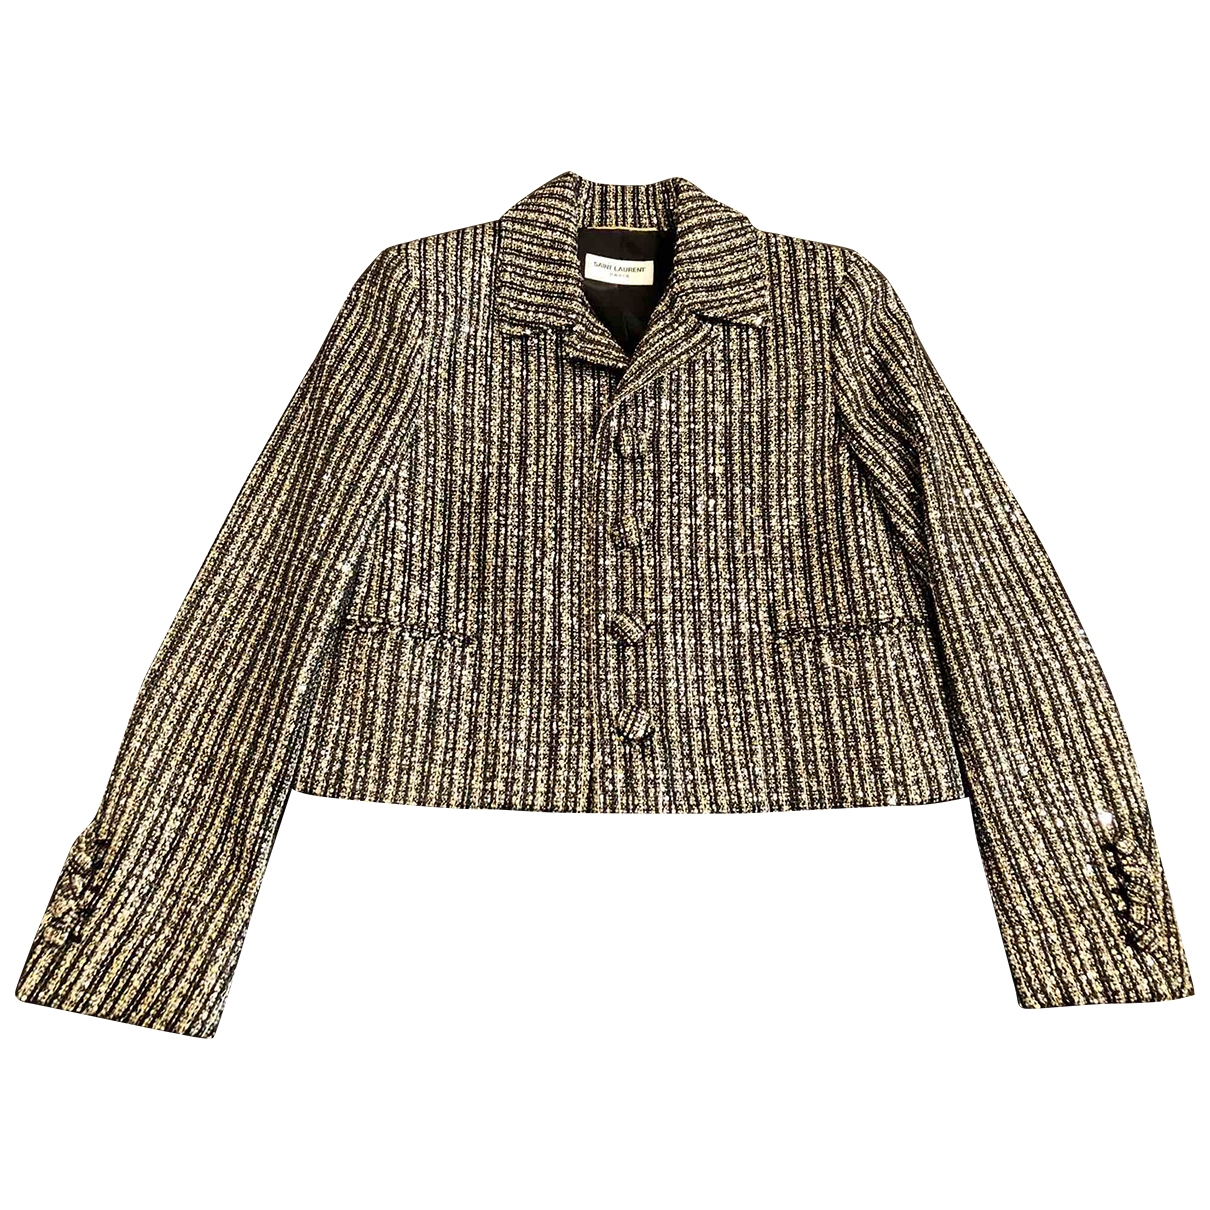 Saint Laurent \N Gold Tweed jacket for Women 36 FR